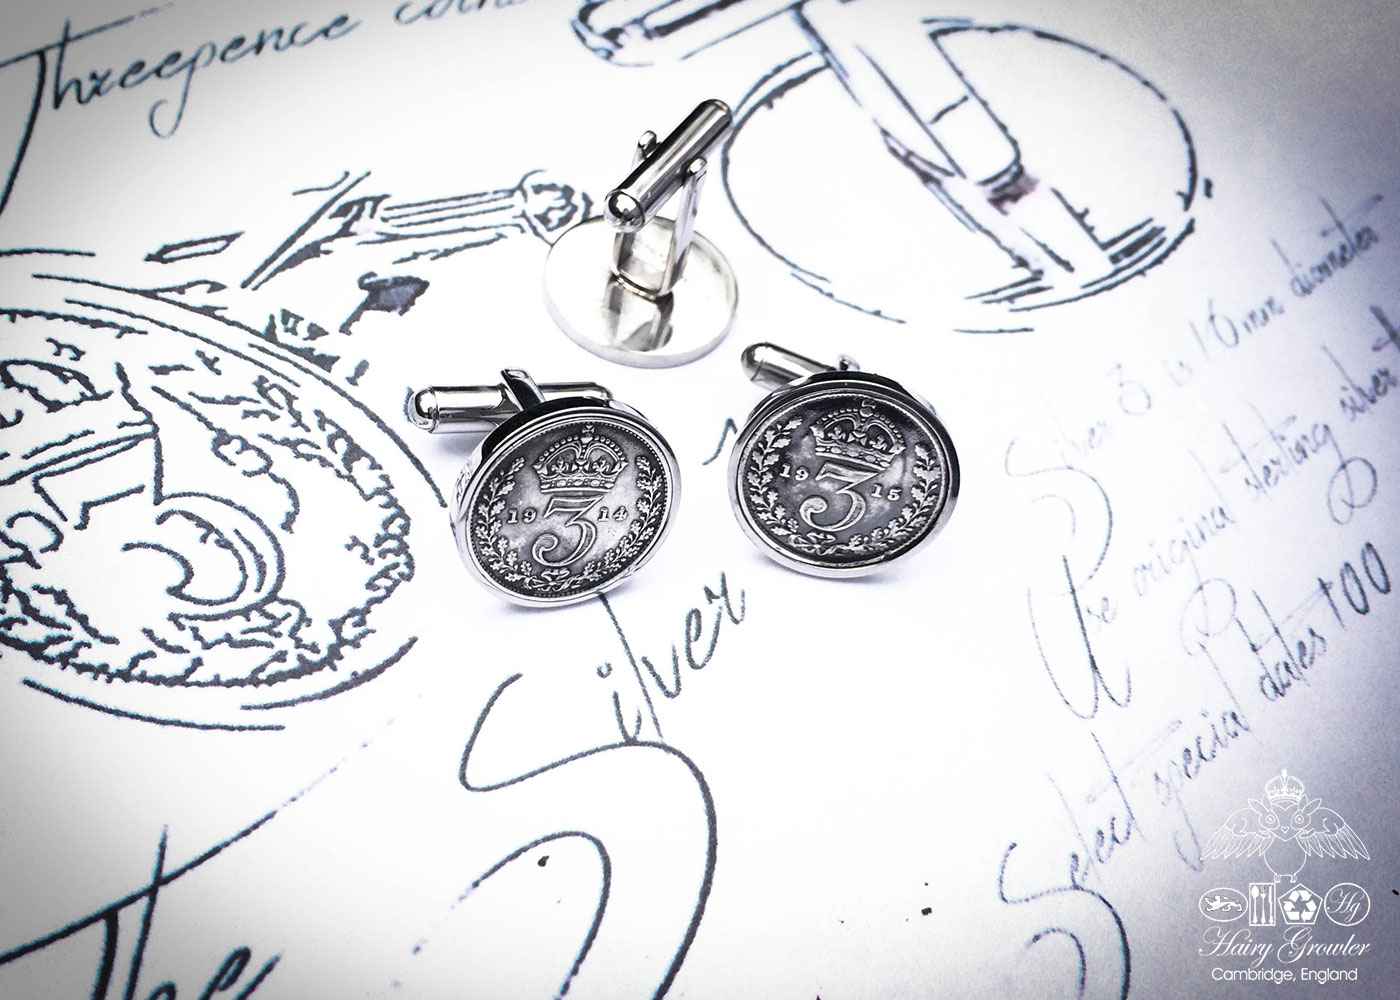 Handcrafted and recycled lucky threepence coin cufflinks